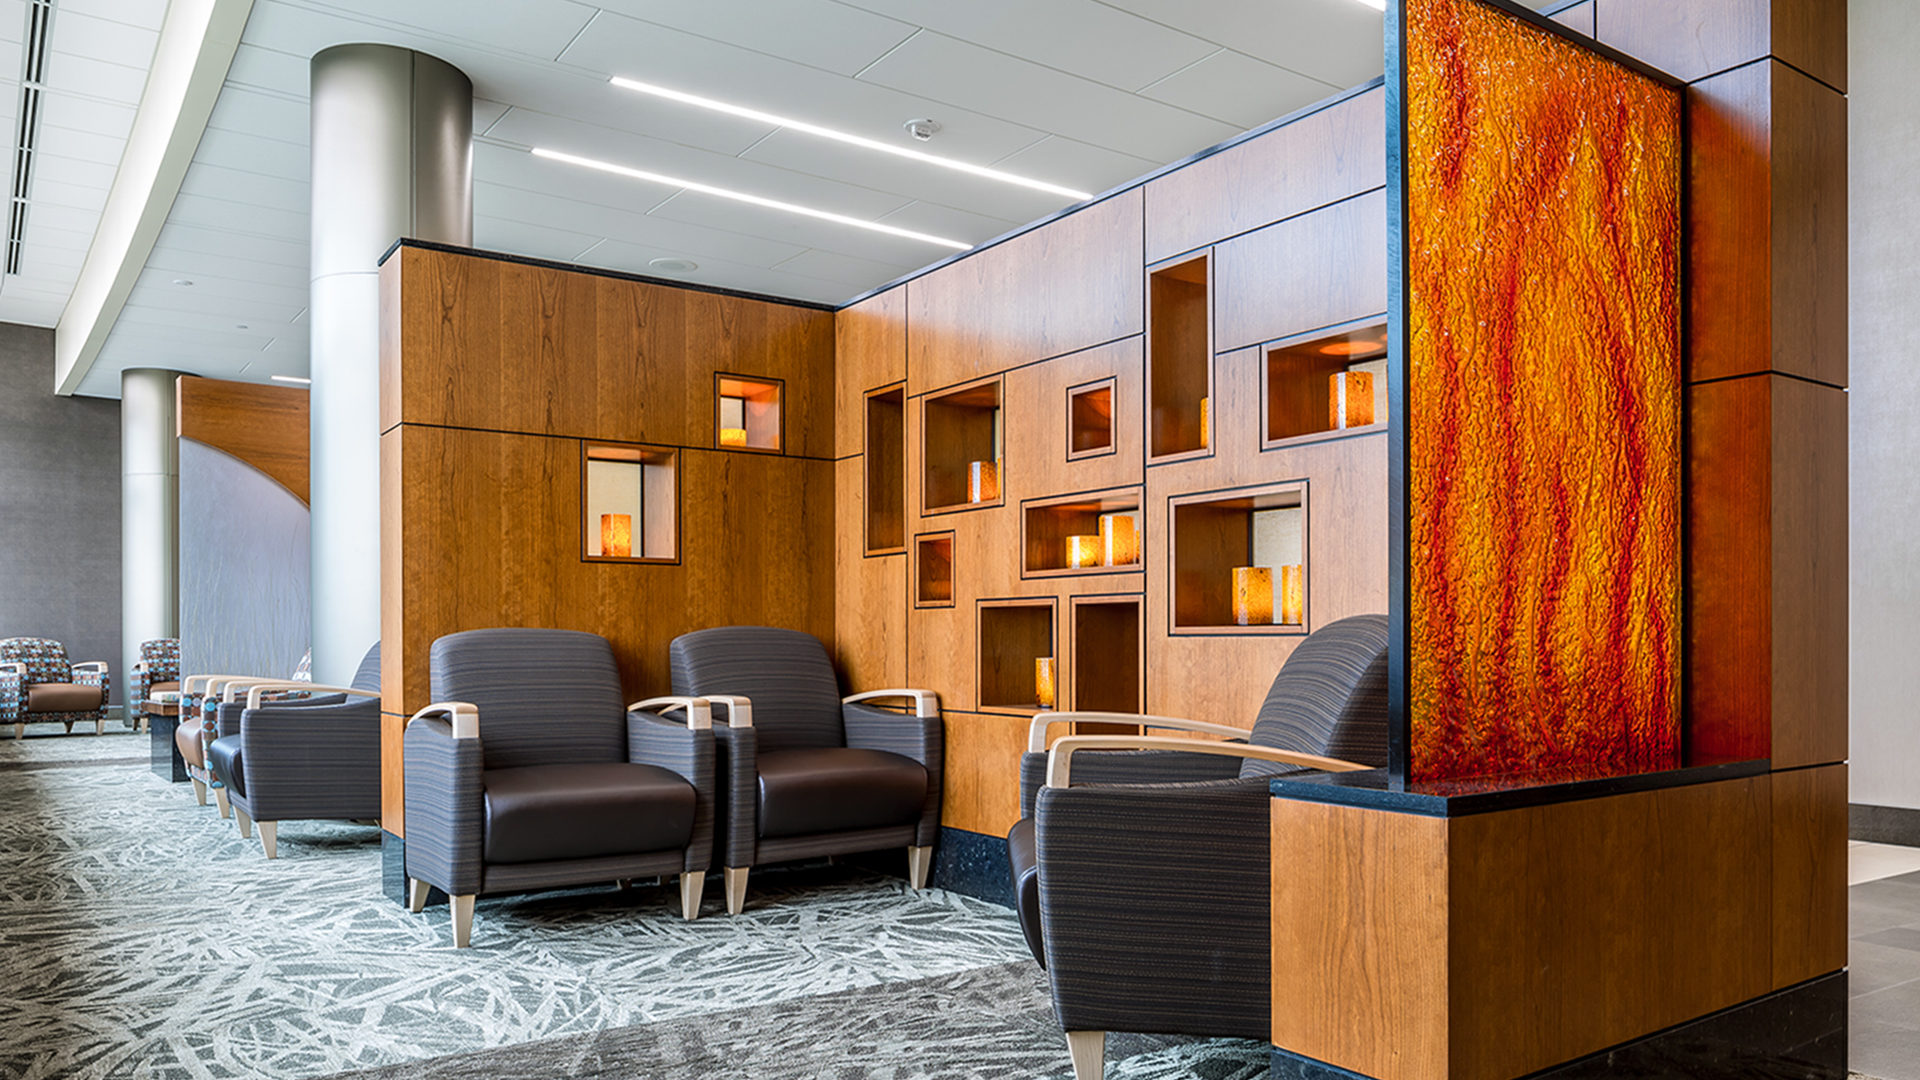 Fairview Ridges Hospital Addition and Renovations Burnsville Lobby Waiting Area